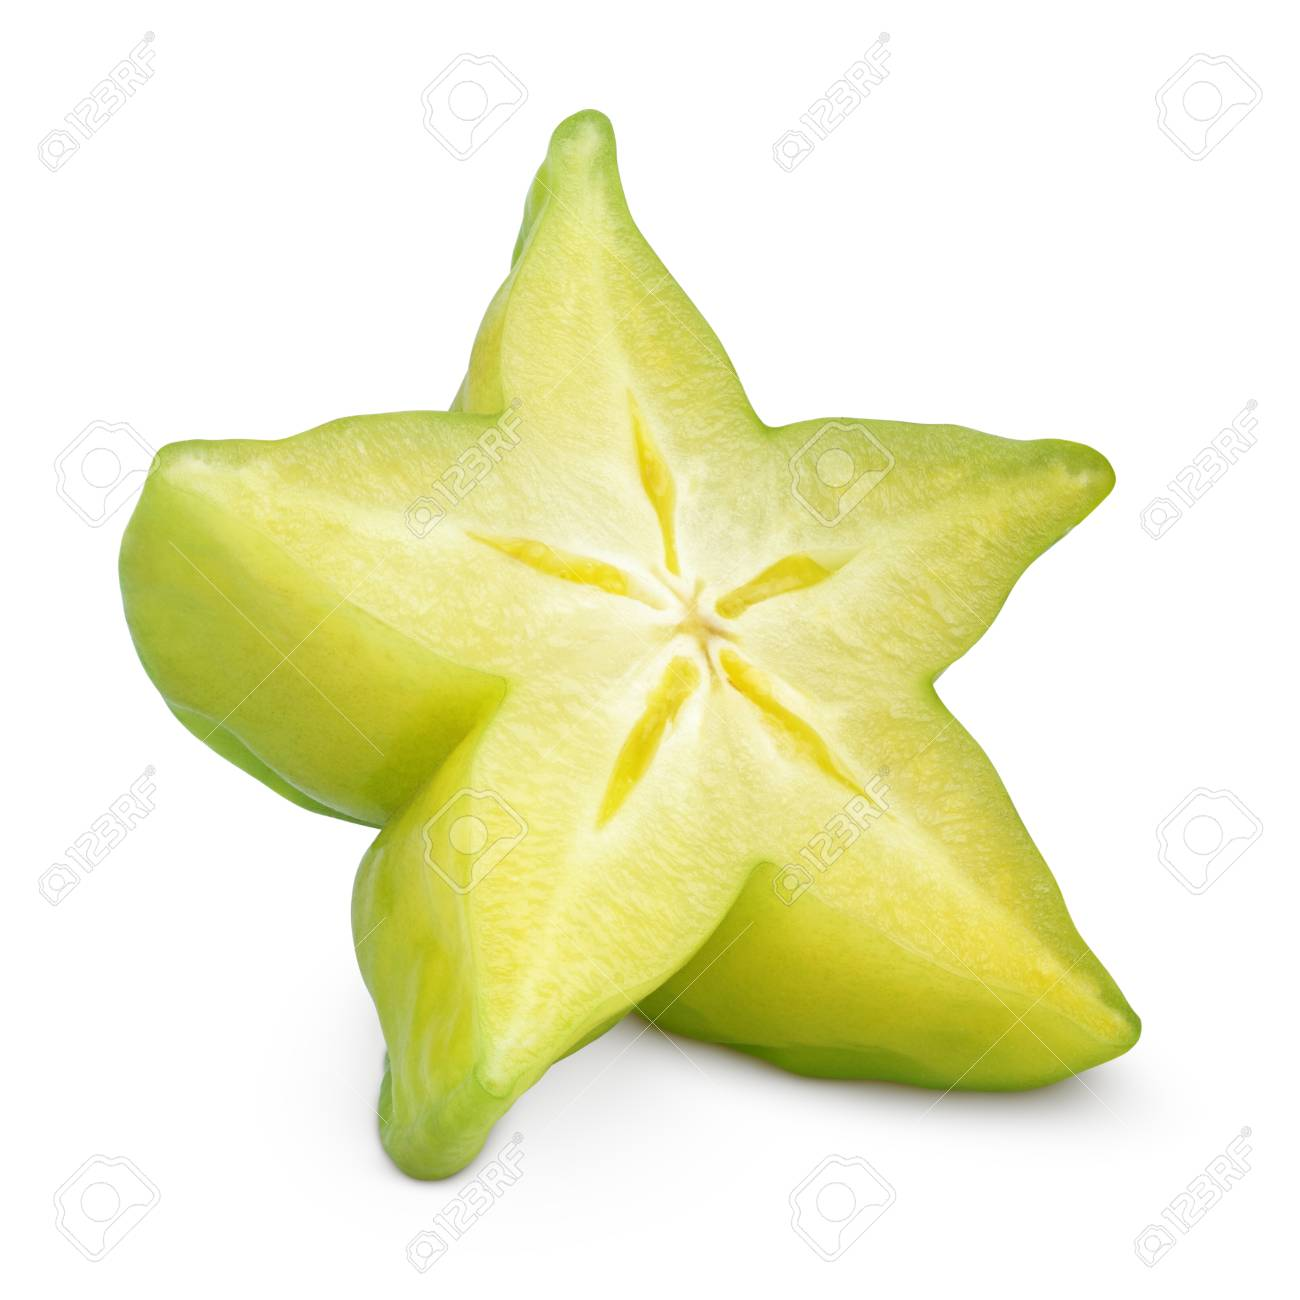 slice of carambola fruit or starfruit isolated stock photo picture